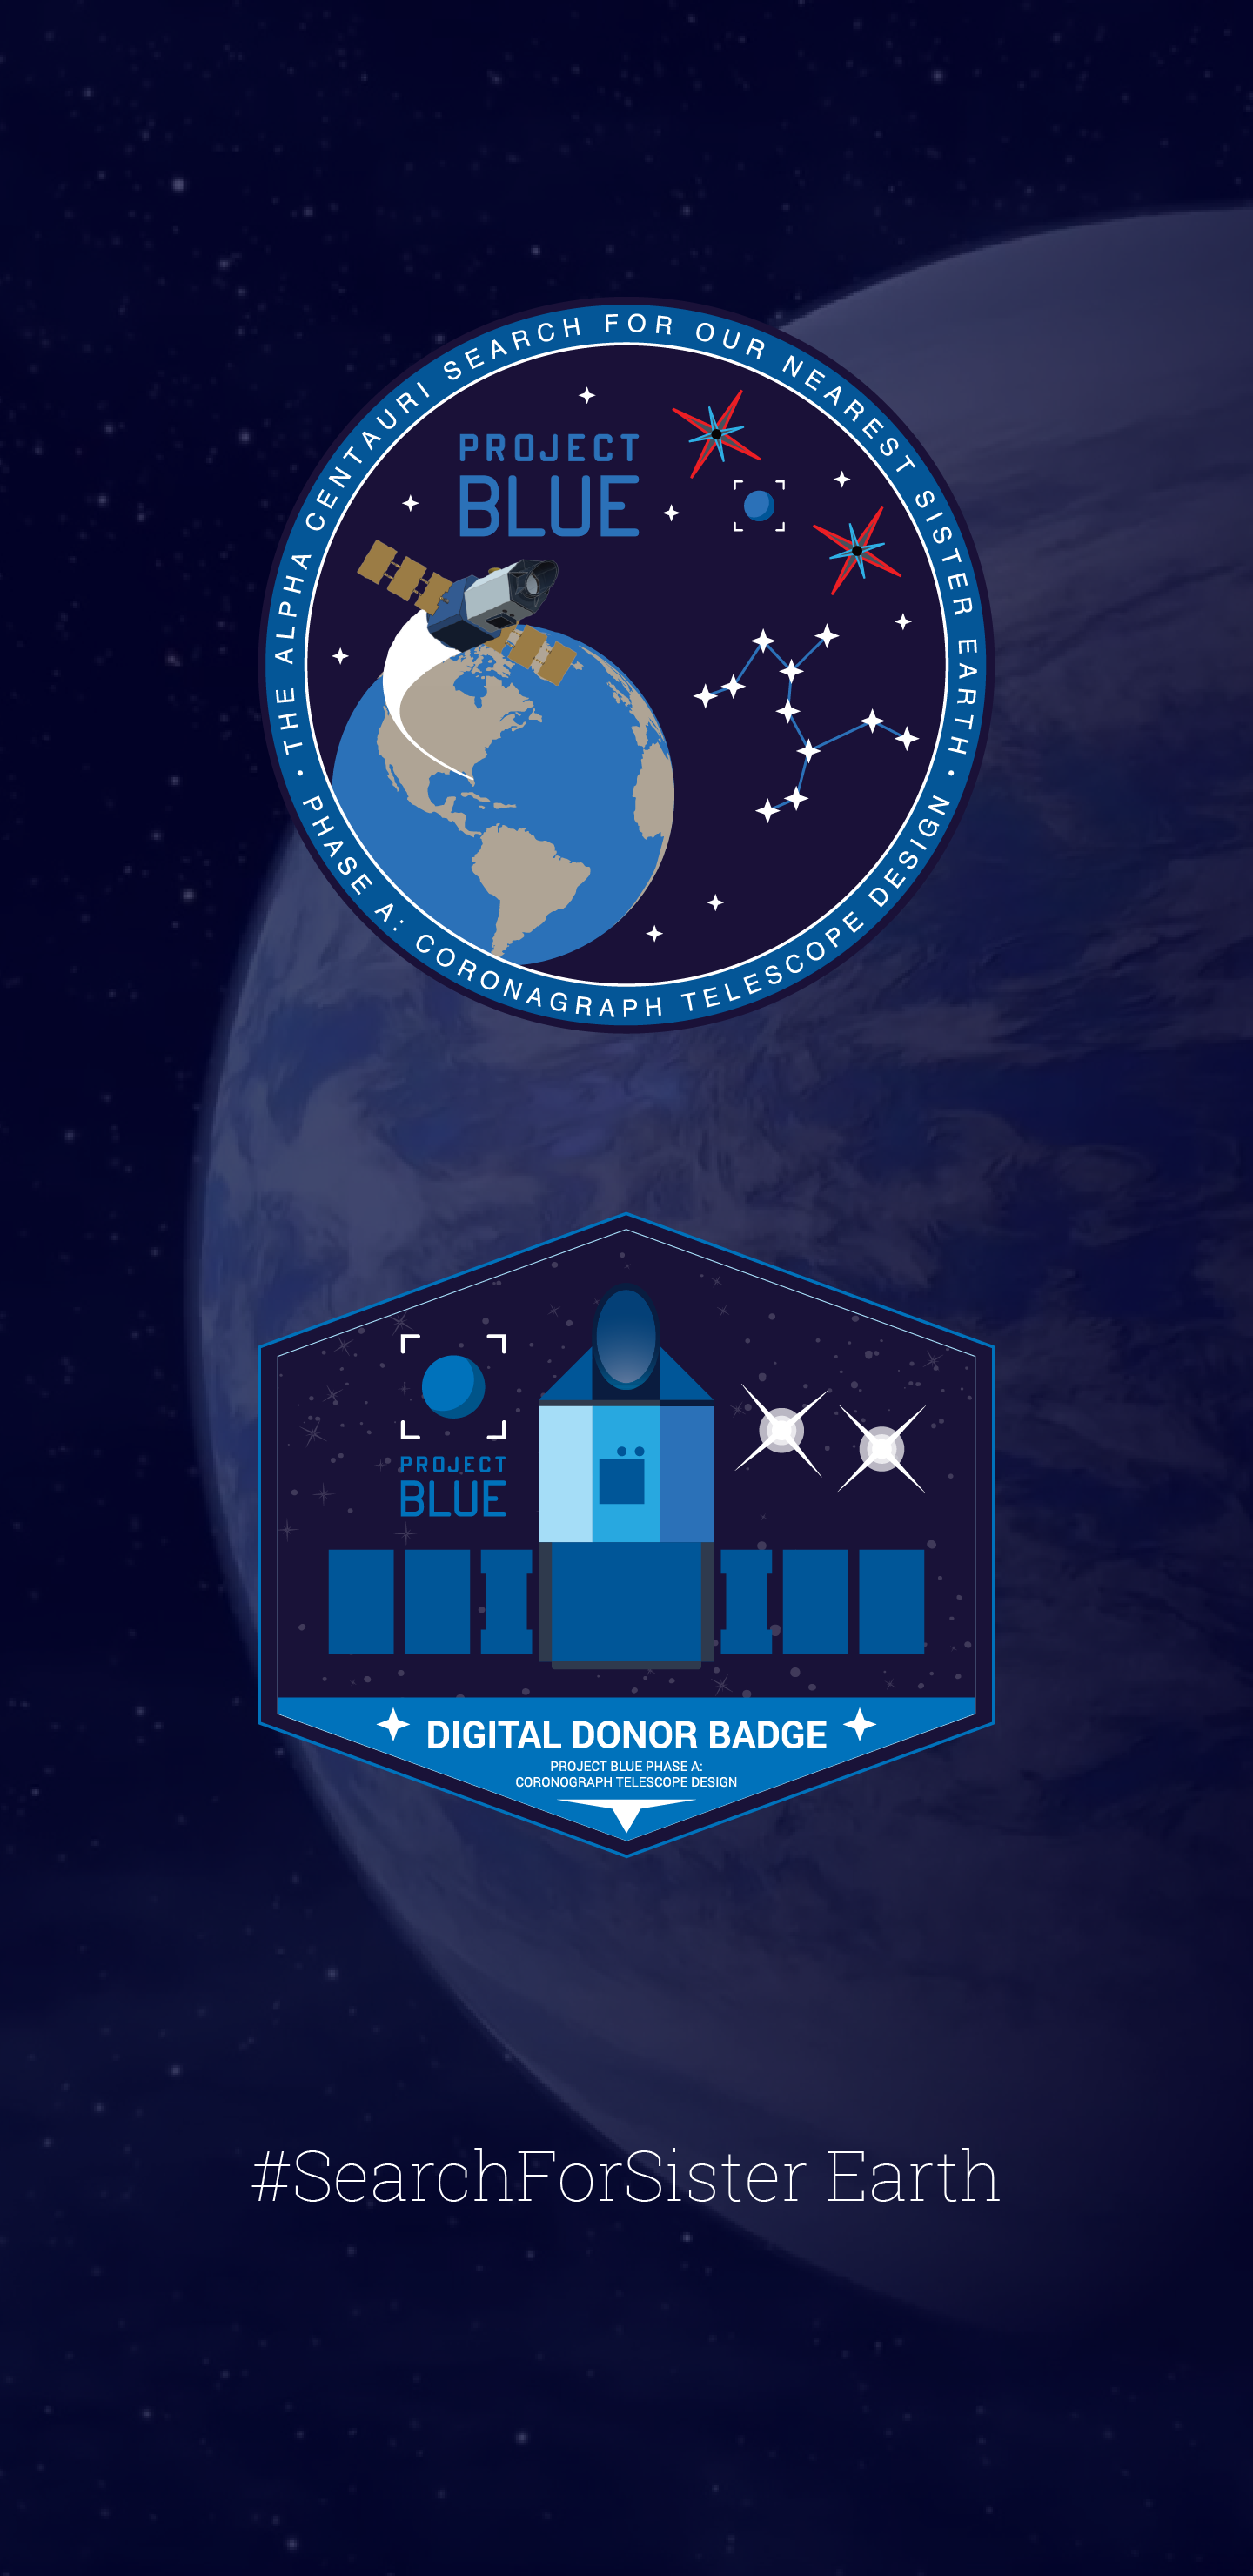 Project Blue Digital Donor Badge Mobile Wallpaper